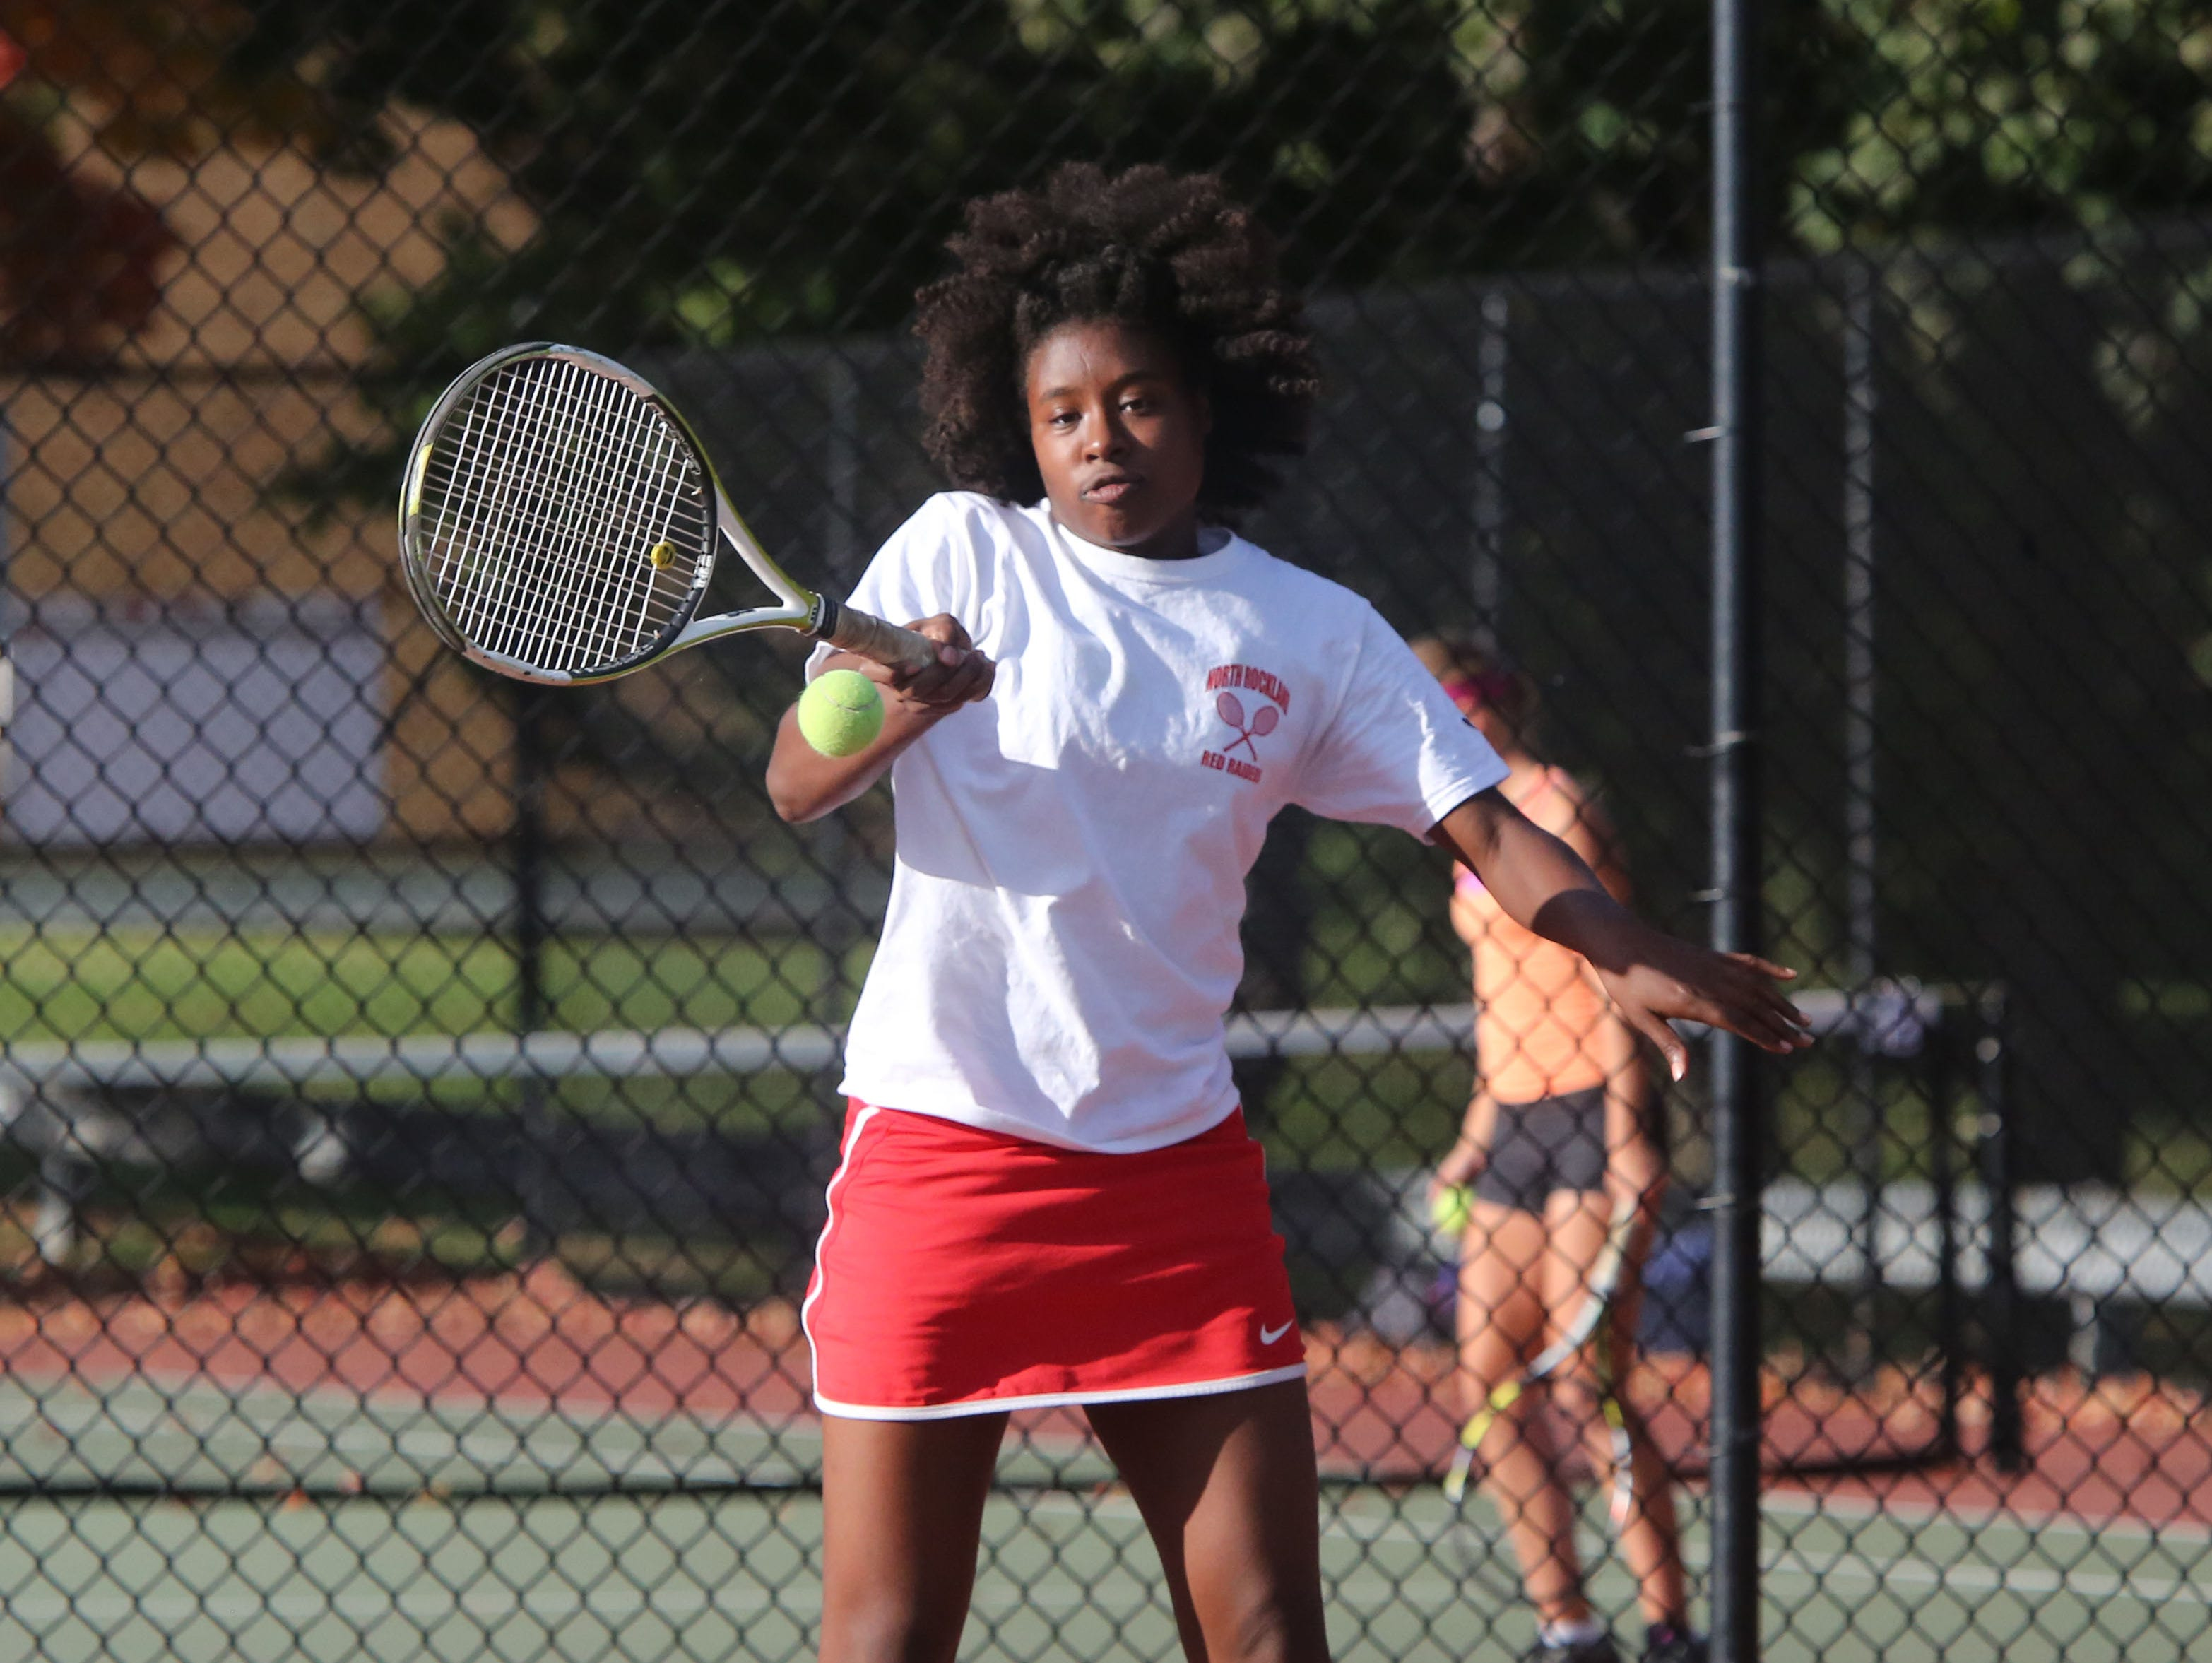 North Rockland's Akemi Dwyer returns the ball while playing with sister Anika Dwyer against Ursuline's Laina Campos and Vanessa Ciano in the doubles finals in the Conference II tennis tournament, Oct. 16, 2015 at White Plains High School.